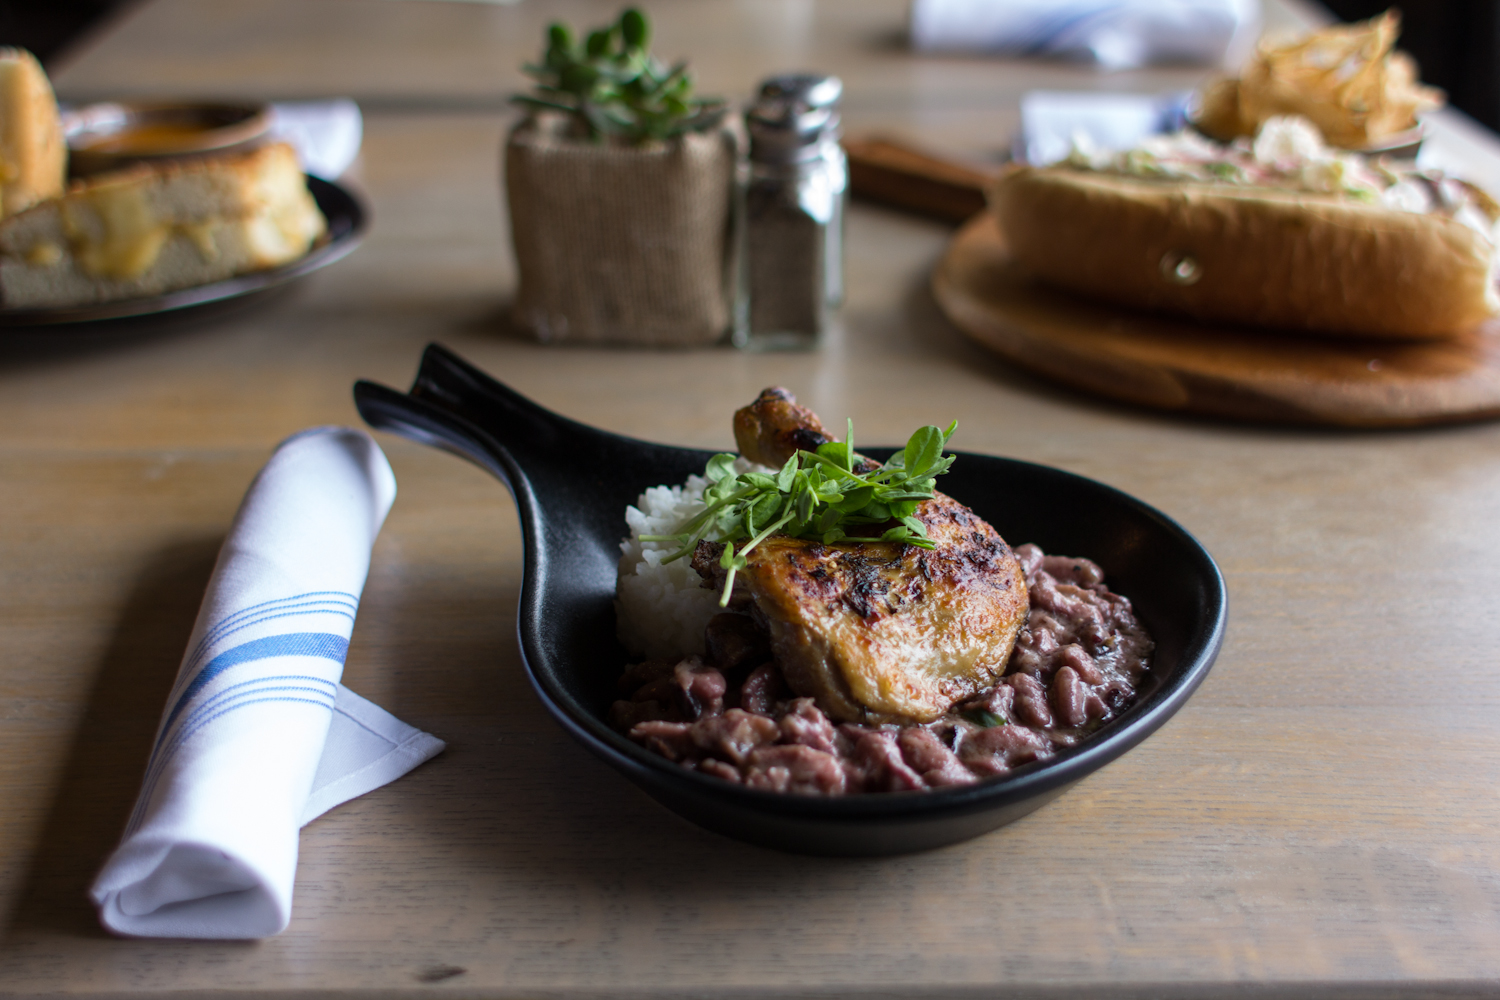 First look table kitchen and bar introduces lunch menu for Food bar kitchen jkl